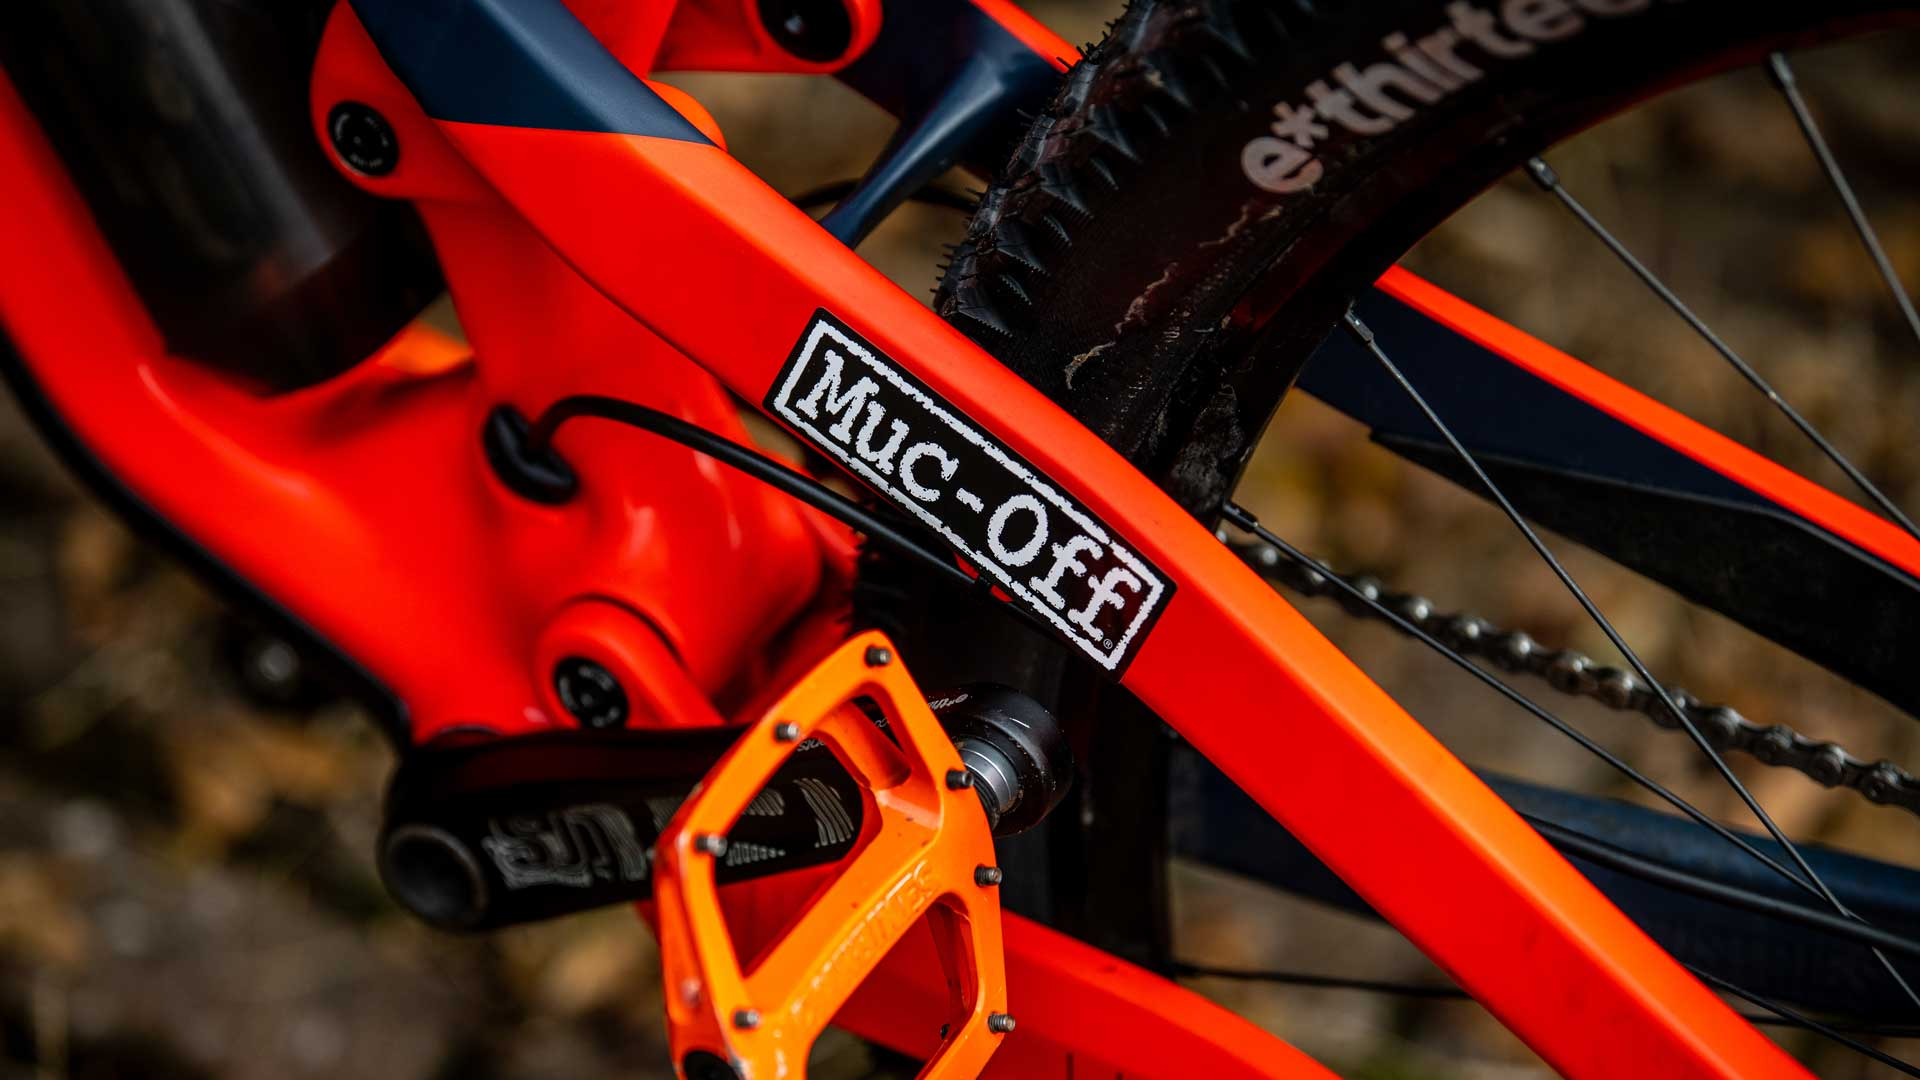 Muc-off black and white sticker stuck on orange bike frame